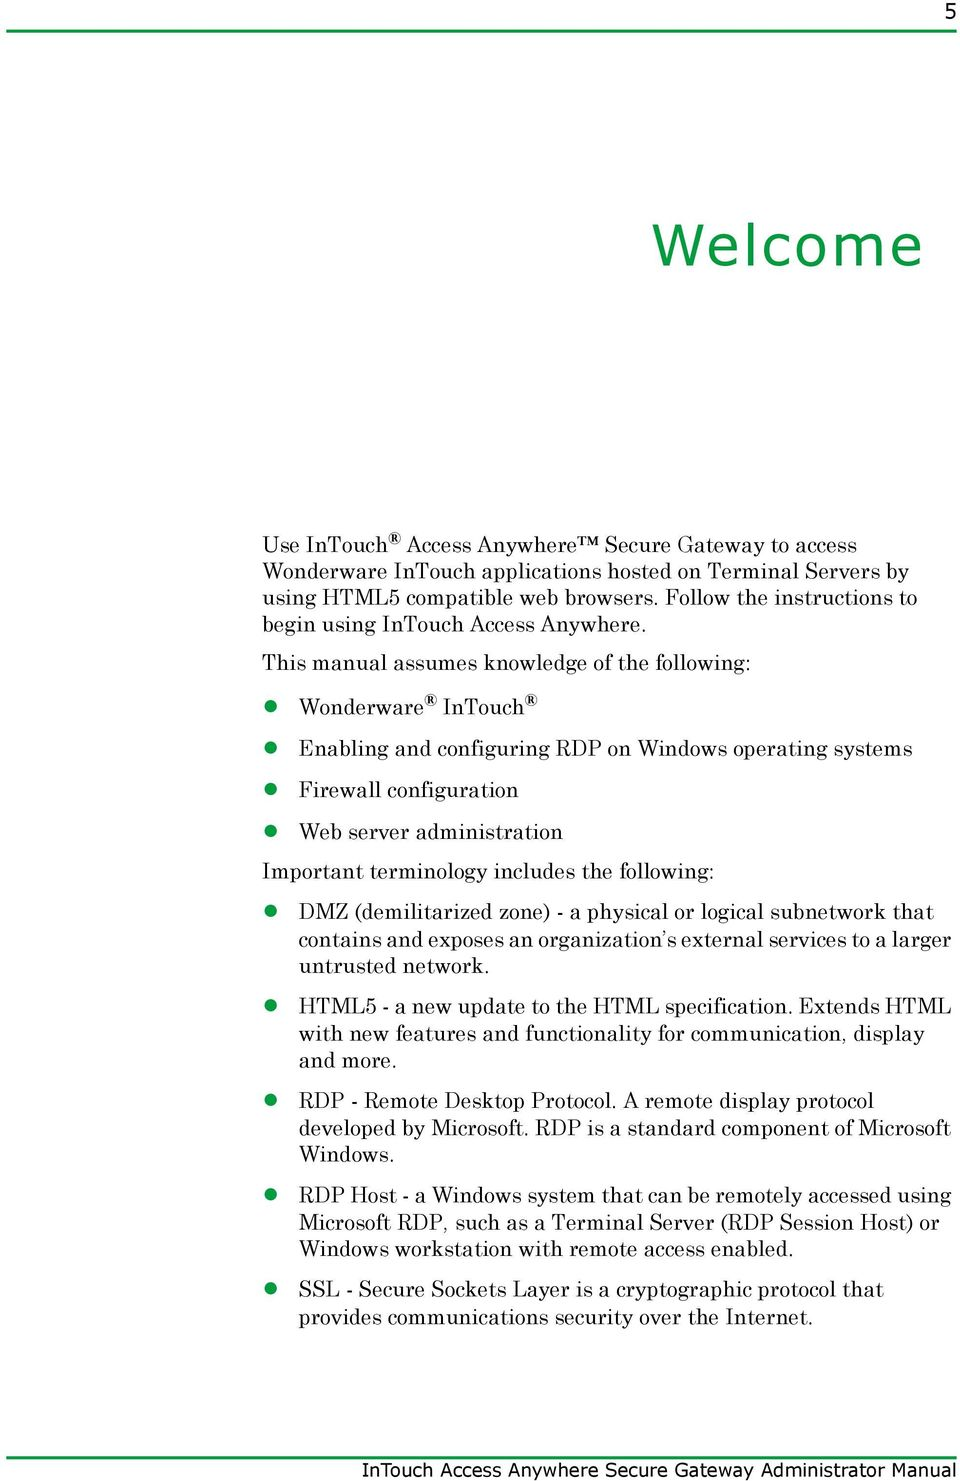 This manual assumes knowledge of the following: Wonderware InTouch Enabling and configuring RDP on Windows operating systems Firewall configuration Web server administration Important terminology